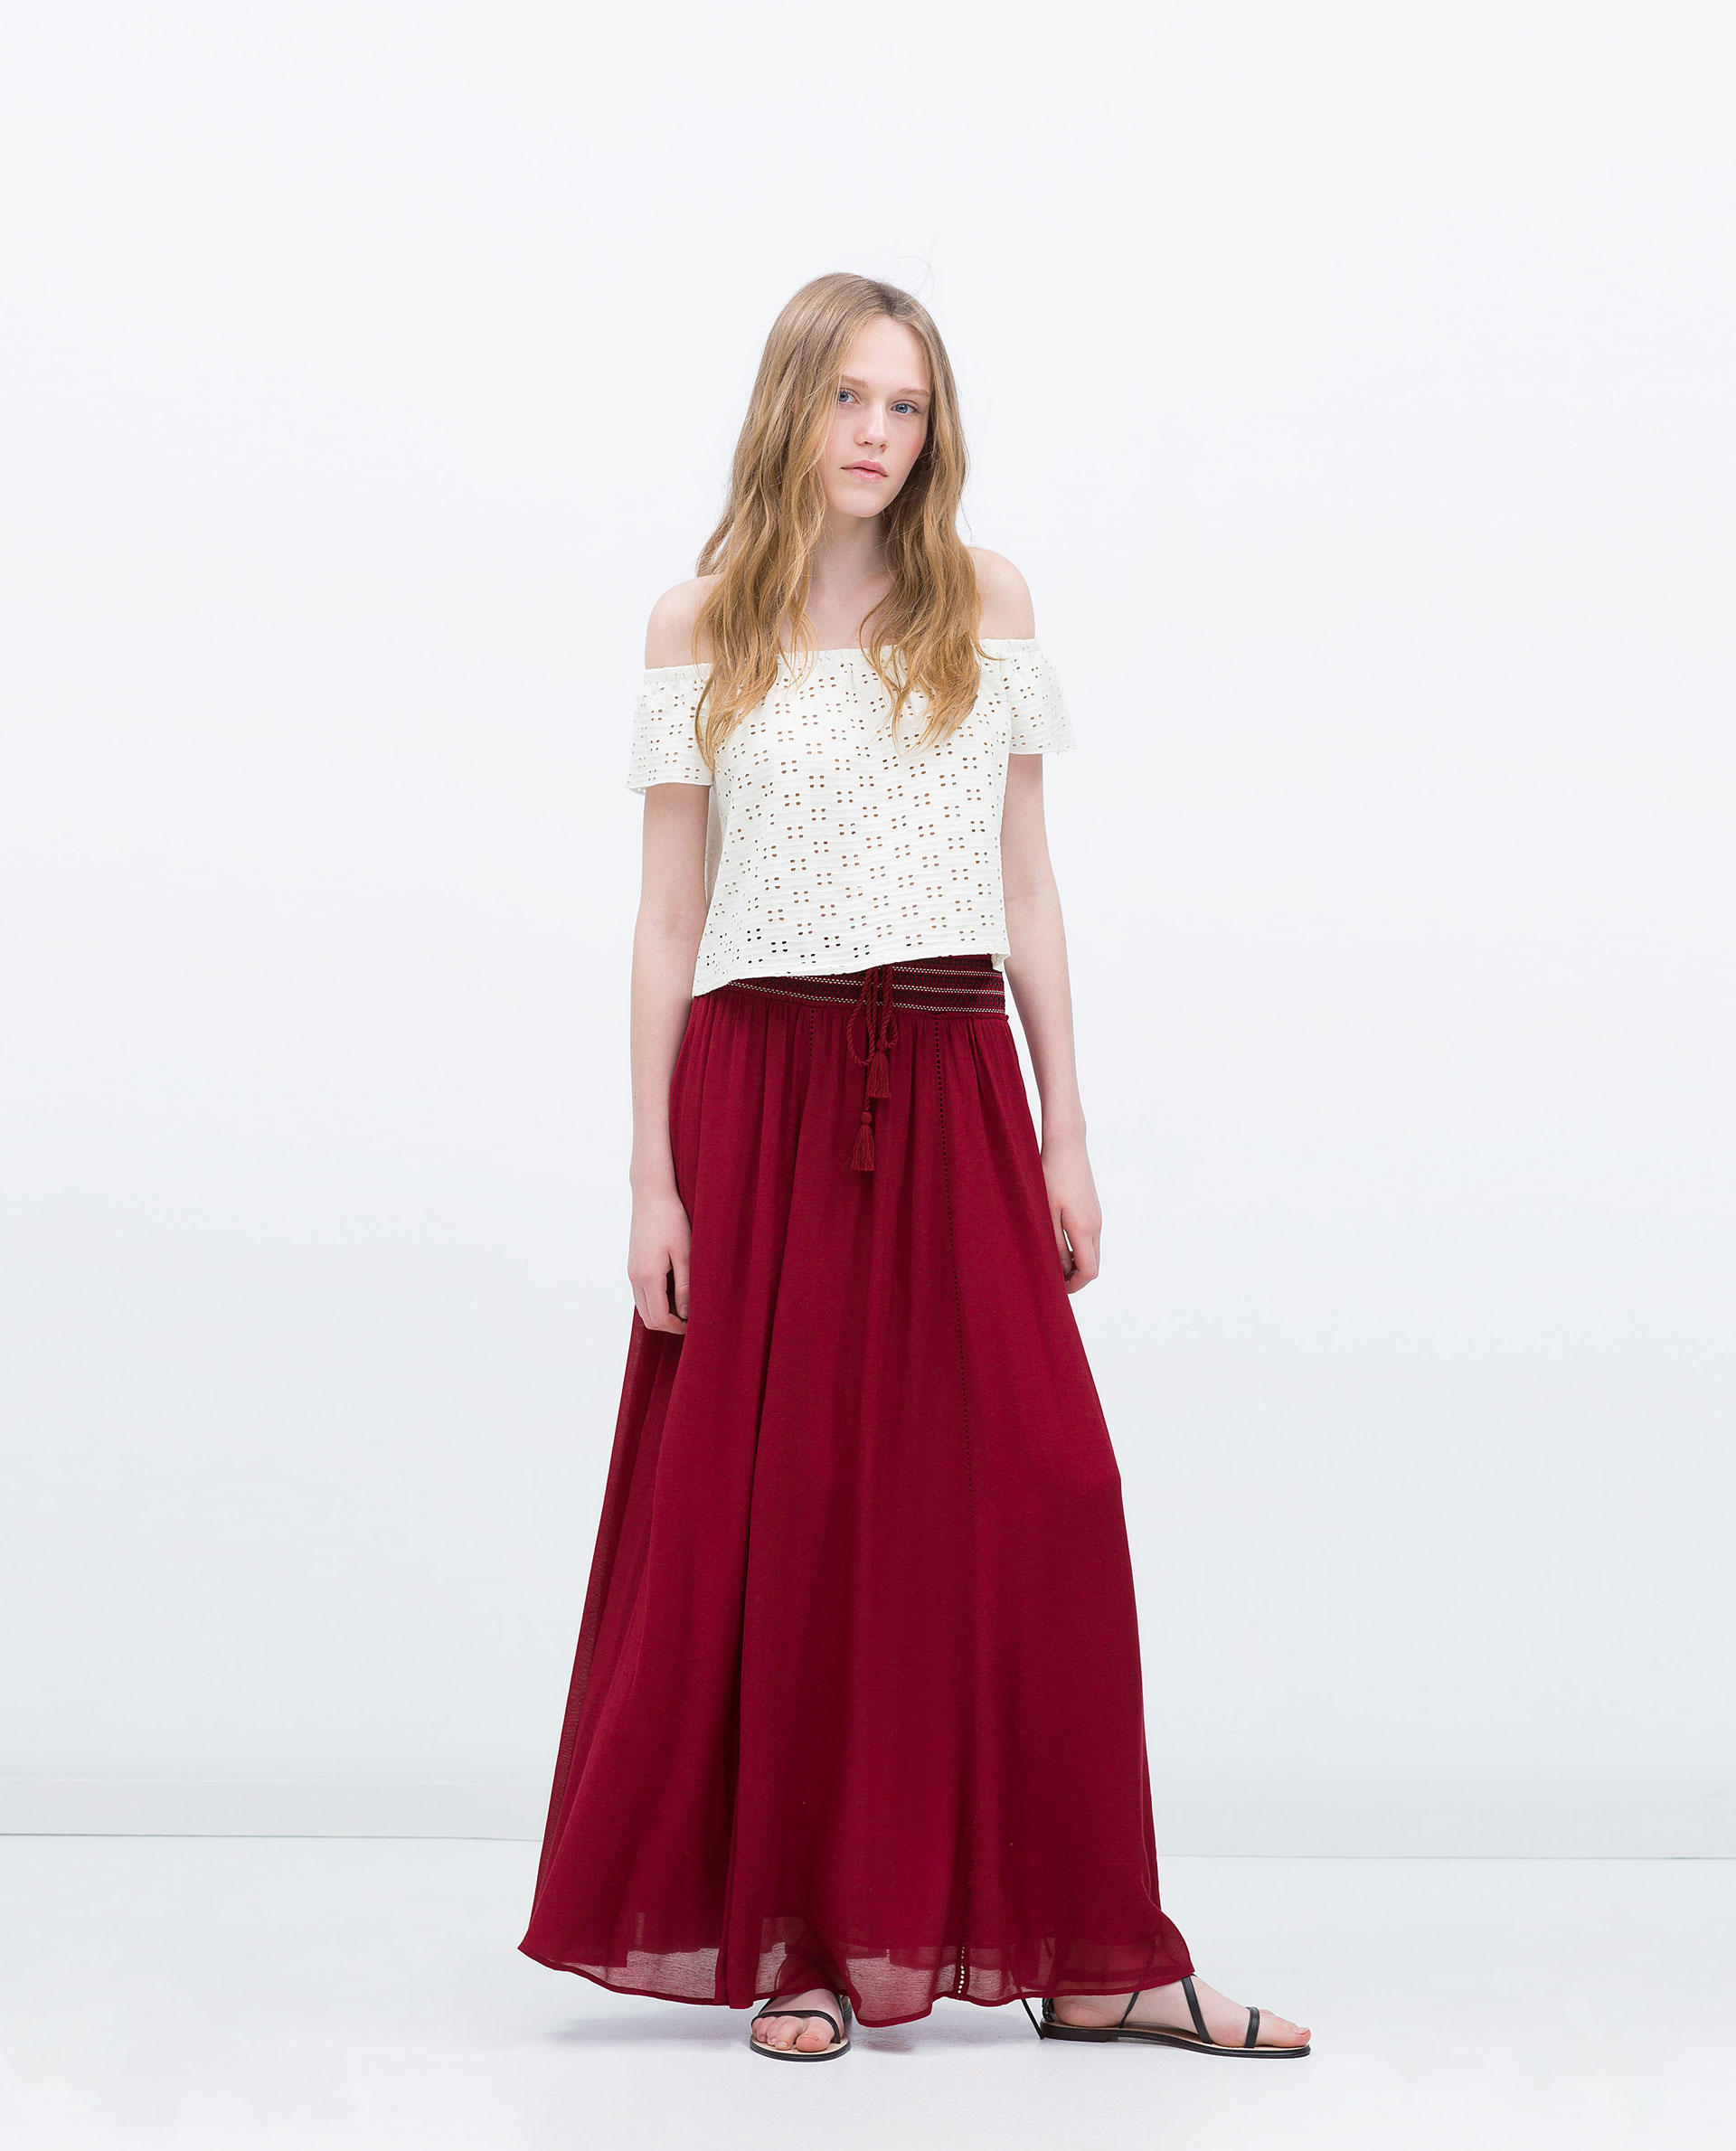 SKIRT - Maxi - Skirts - WOMAN | ZARA United Kingdom